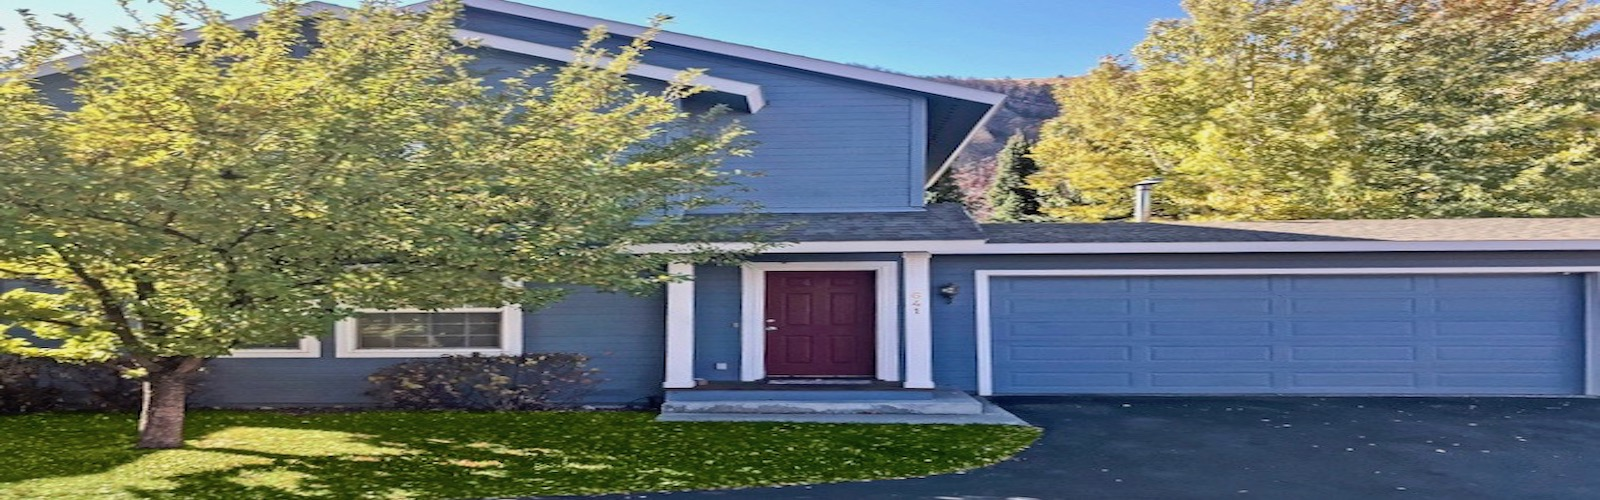 Convenient 2-story Townhome In Hailey, ID with VIEWS!